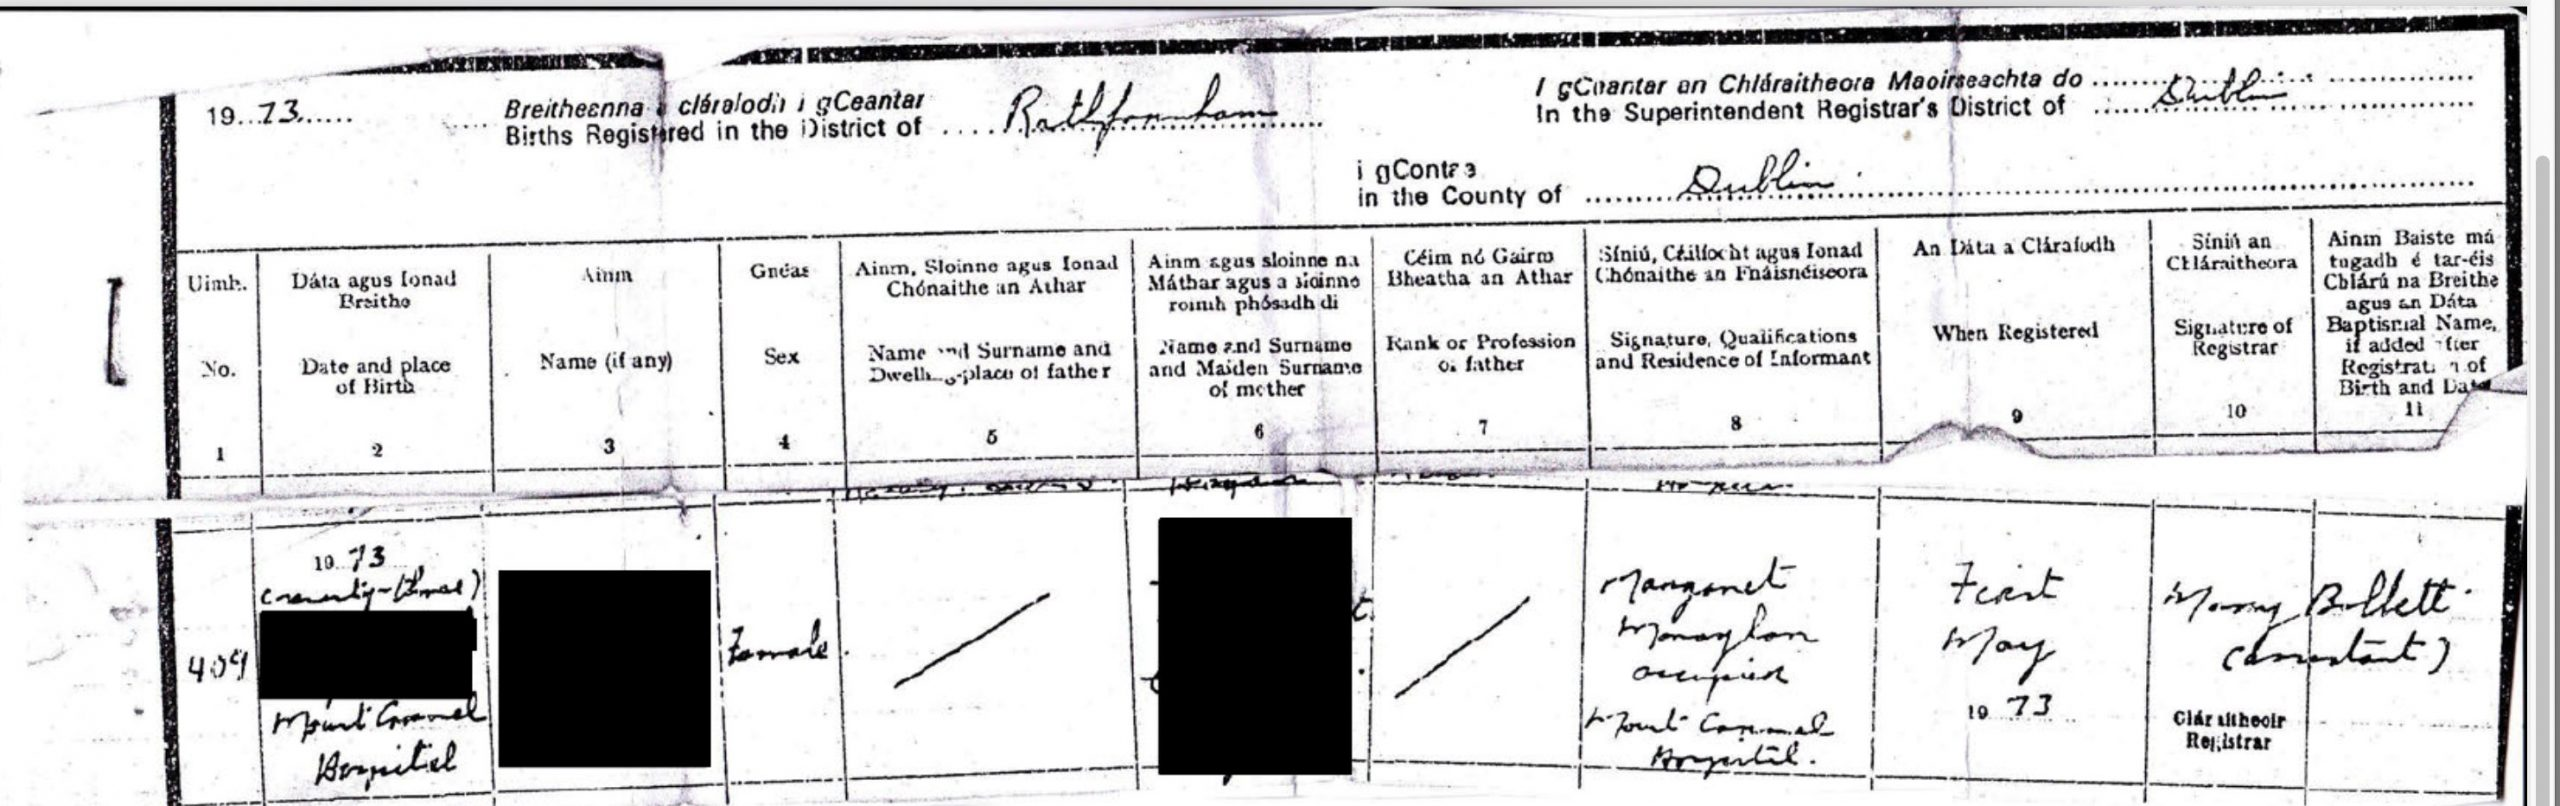 Sample of an adopted person's birth certificate